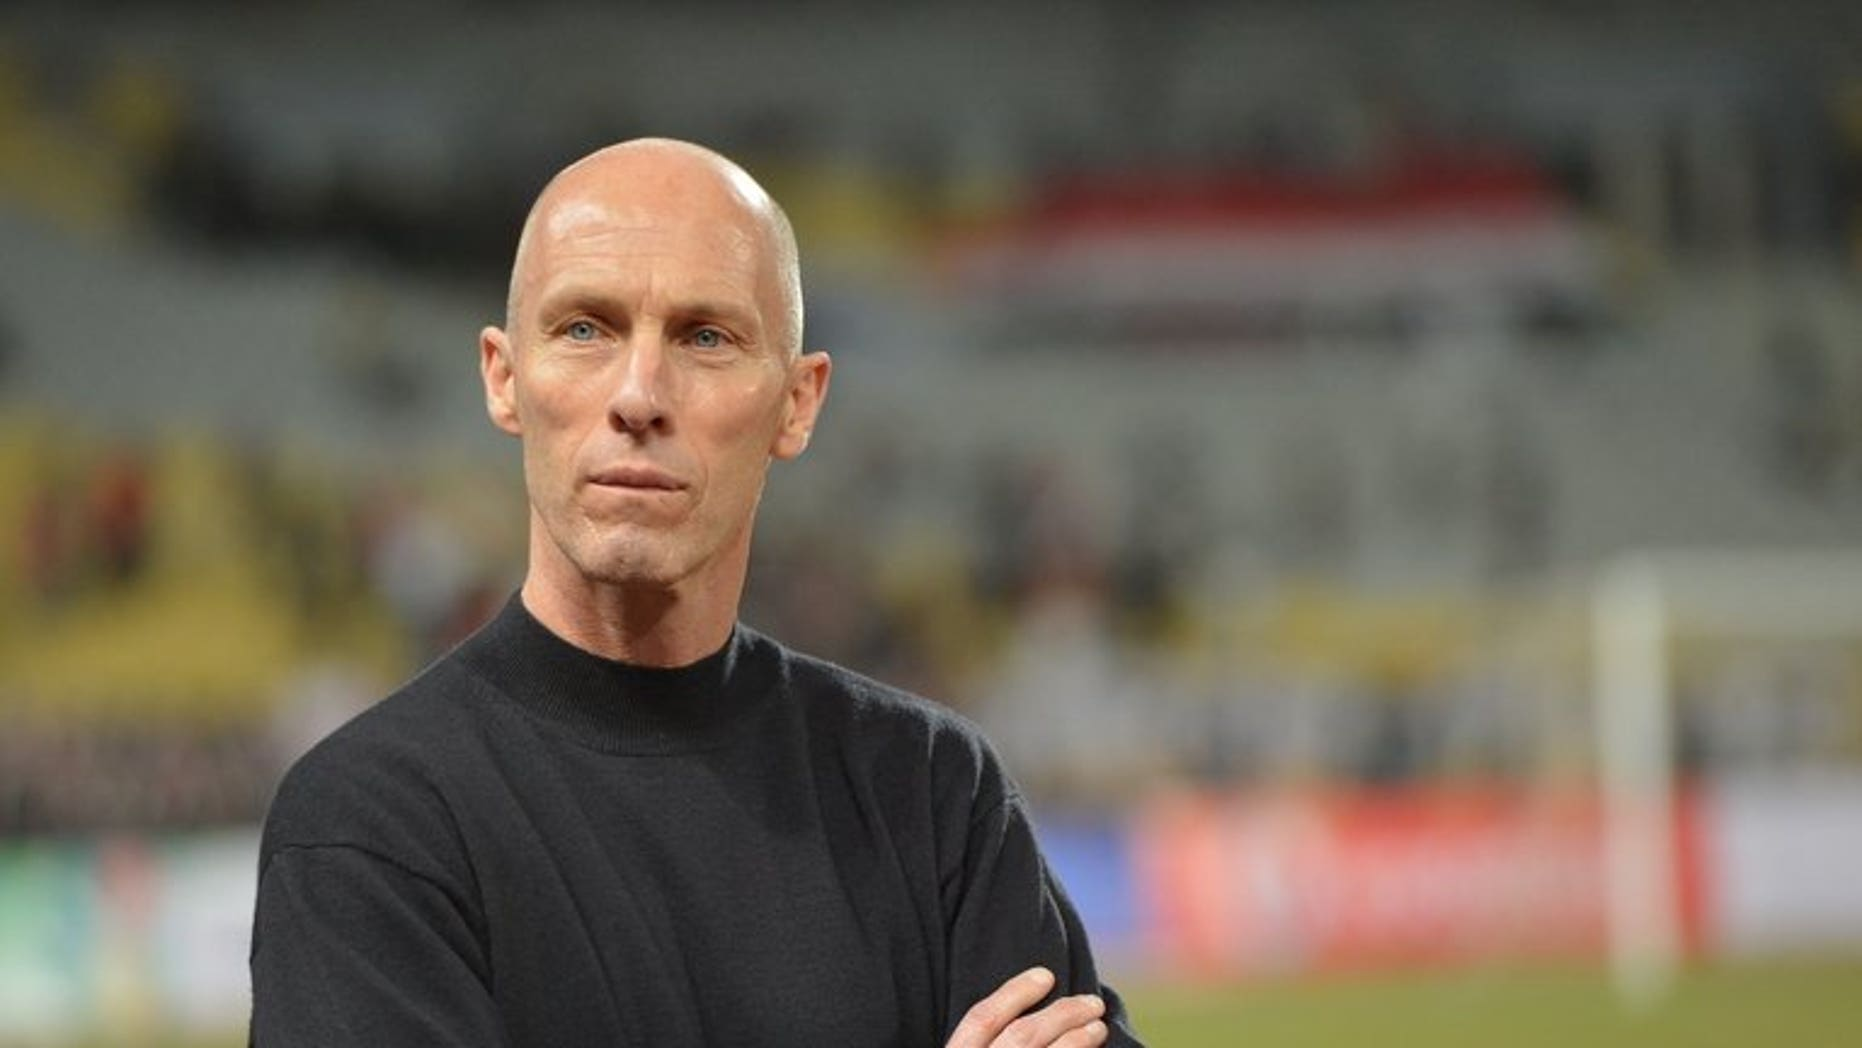 American Bob Bradley, head coach of Egypt's national team, looks on in Borg el-Arab on March 26, 2013. Egypt whipped Uganda 3-0 Wednesday in a World Cup warm-up 450 kilometres from a bloody security forces crackdown on supporters of ex-president Mohamed Morsi.